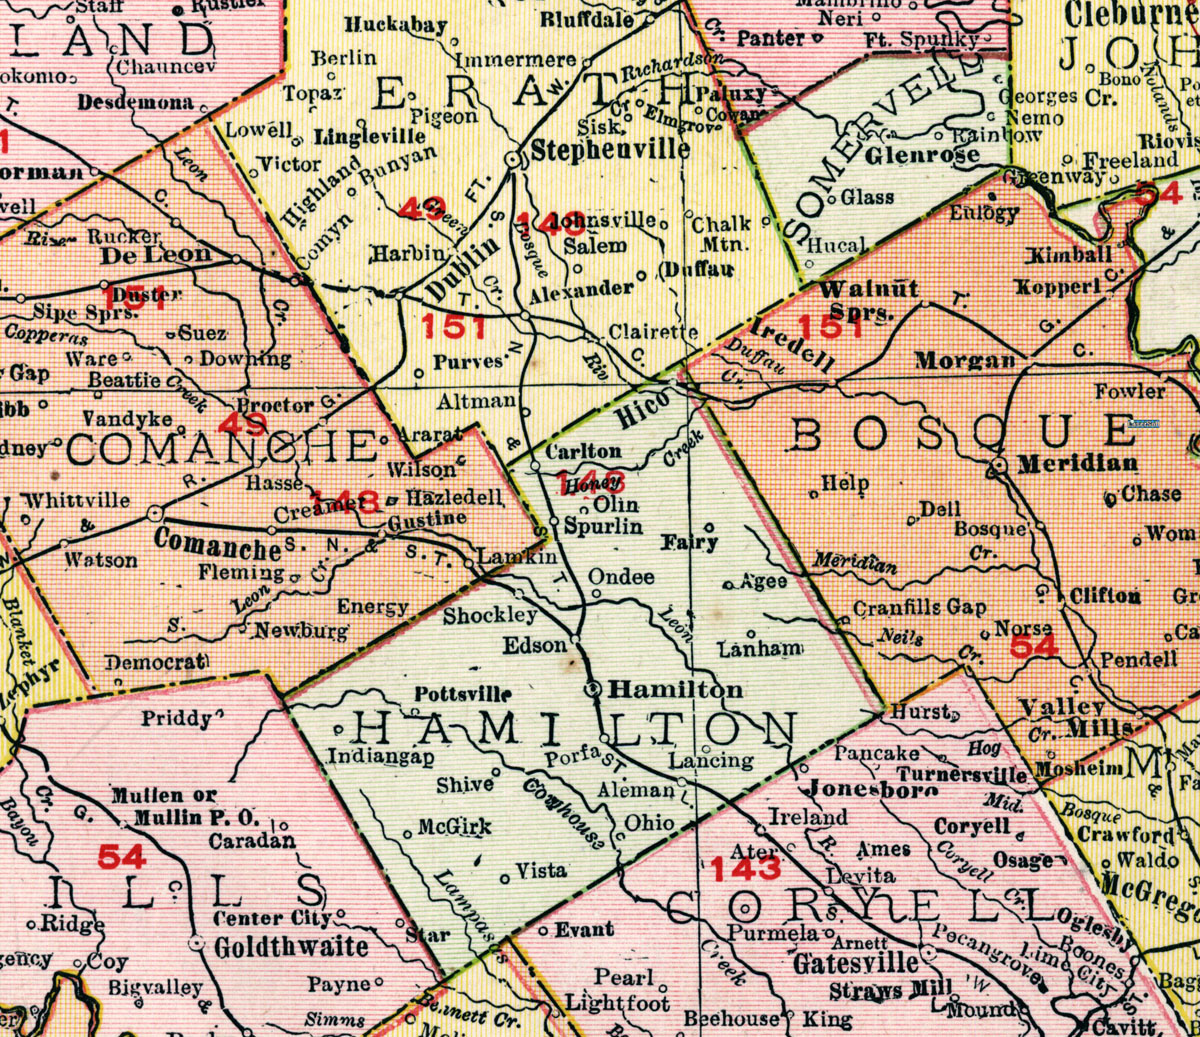 Map Of Texas Railroads.Stephenville North South Texas Railway Company Tex Map Showing